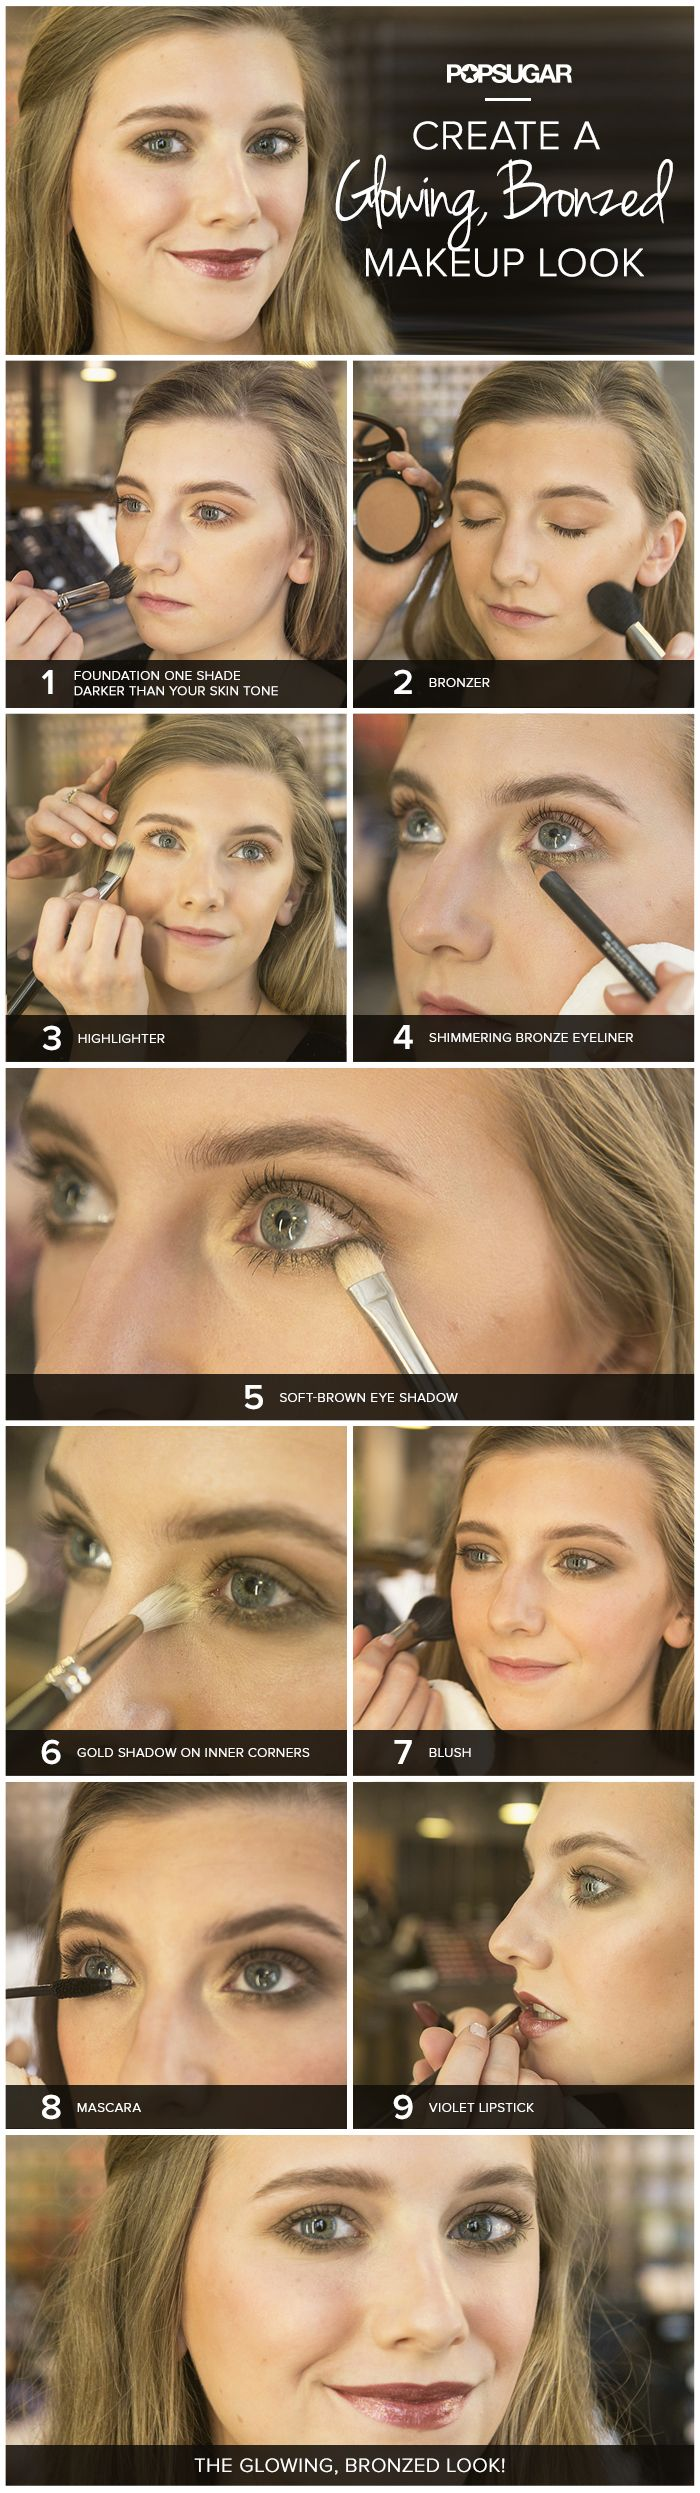 How to create a glowing bronzed makeup look.